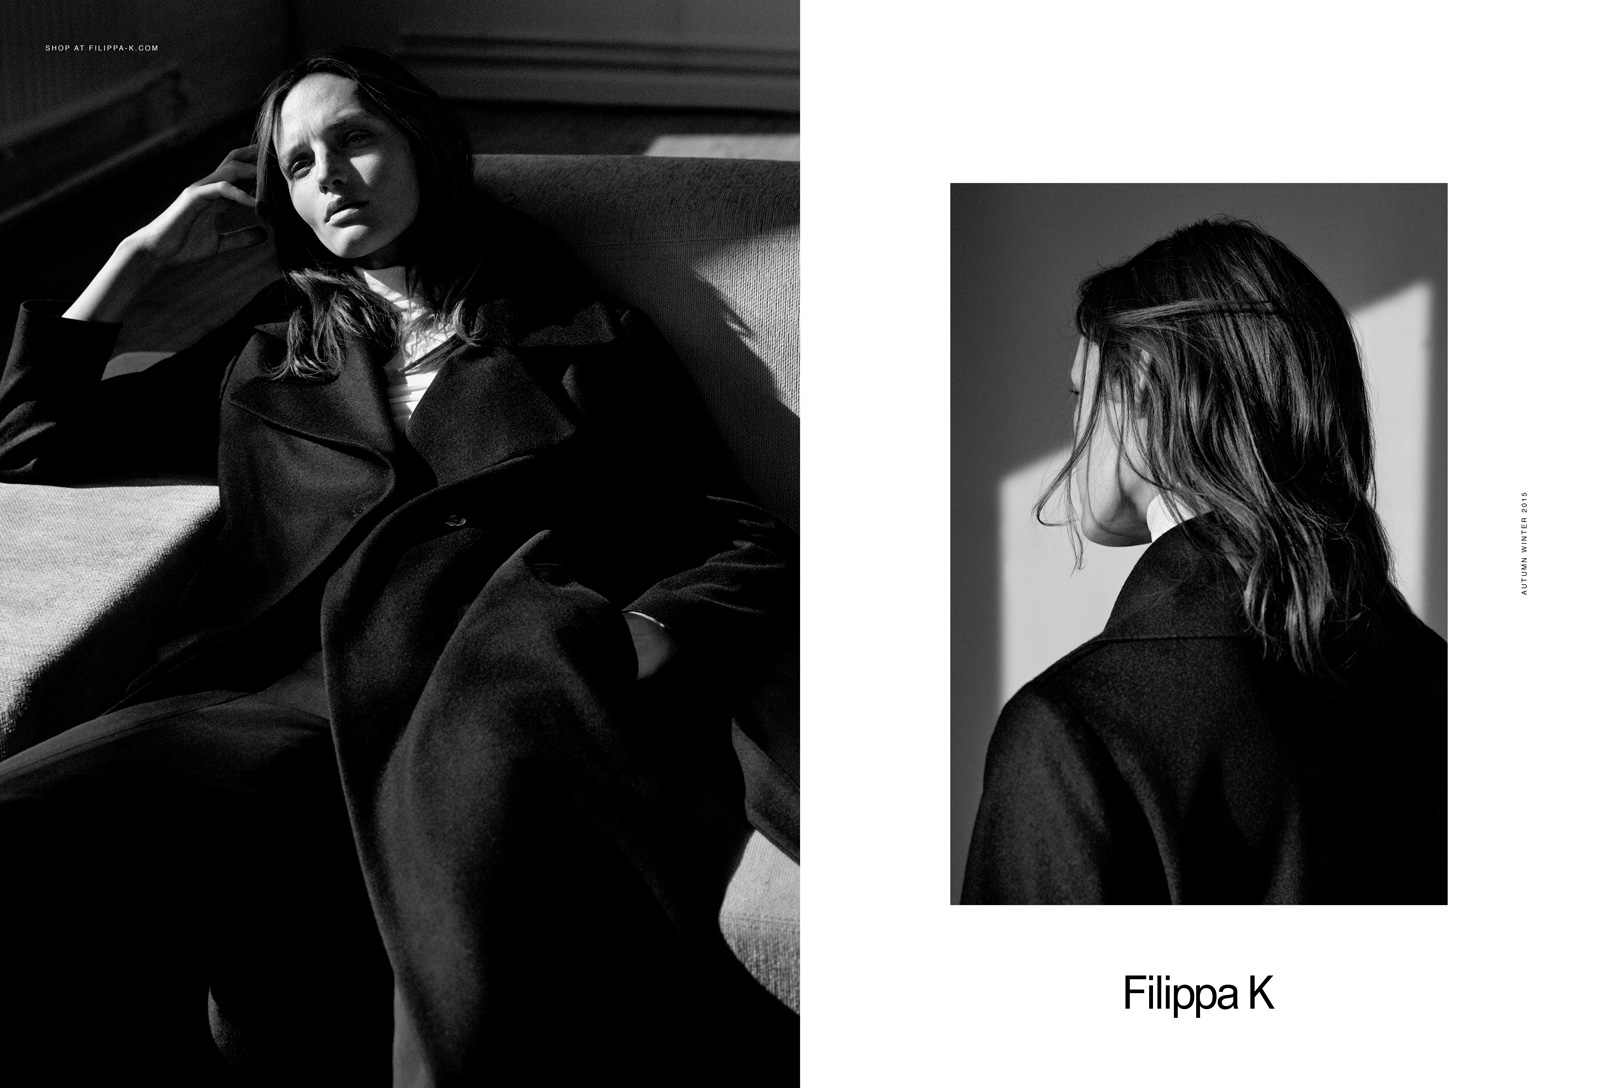 fk_aw15_dps-layout3